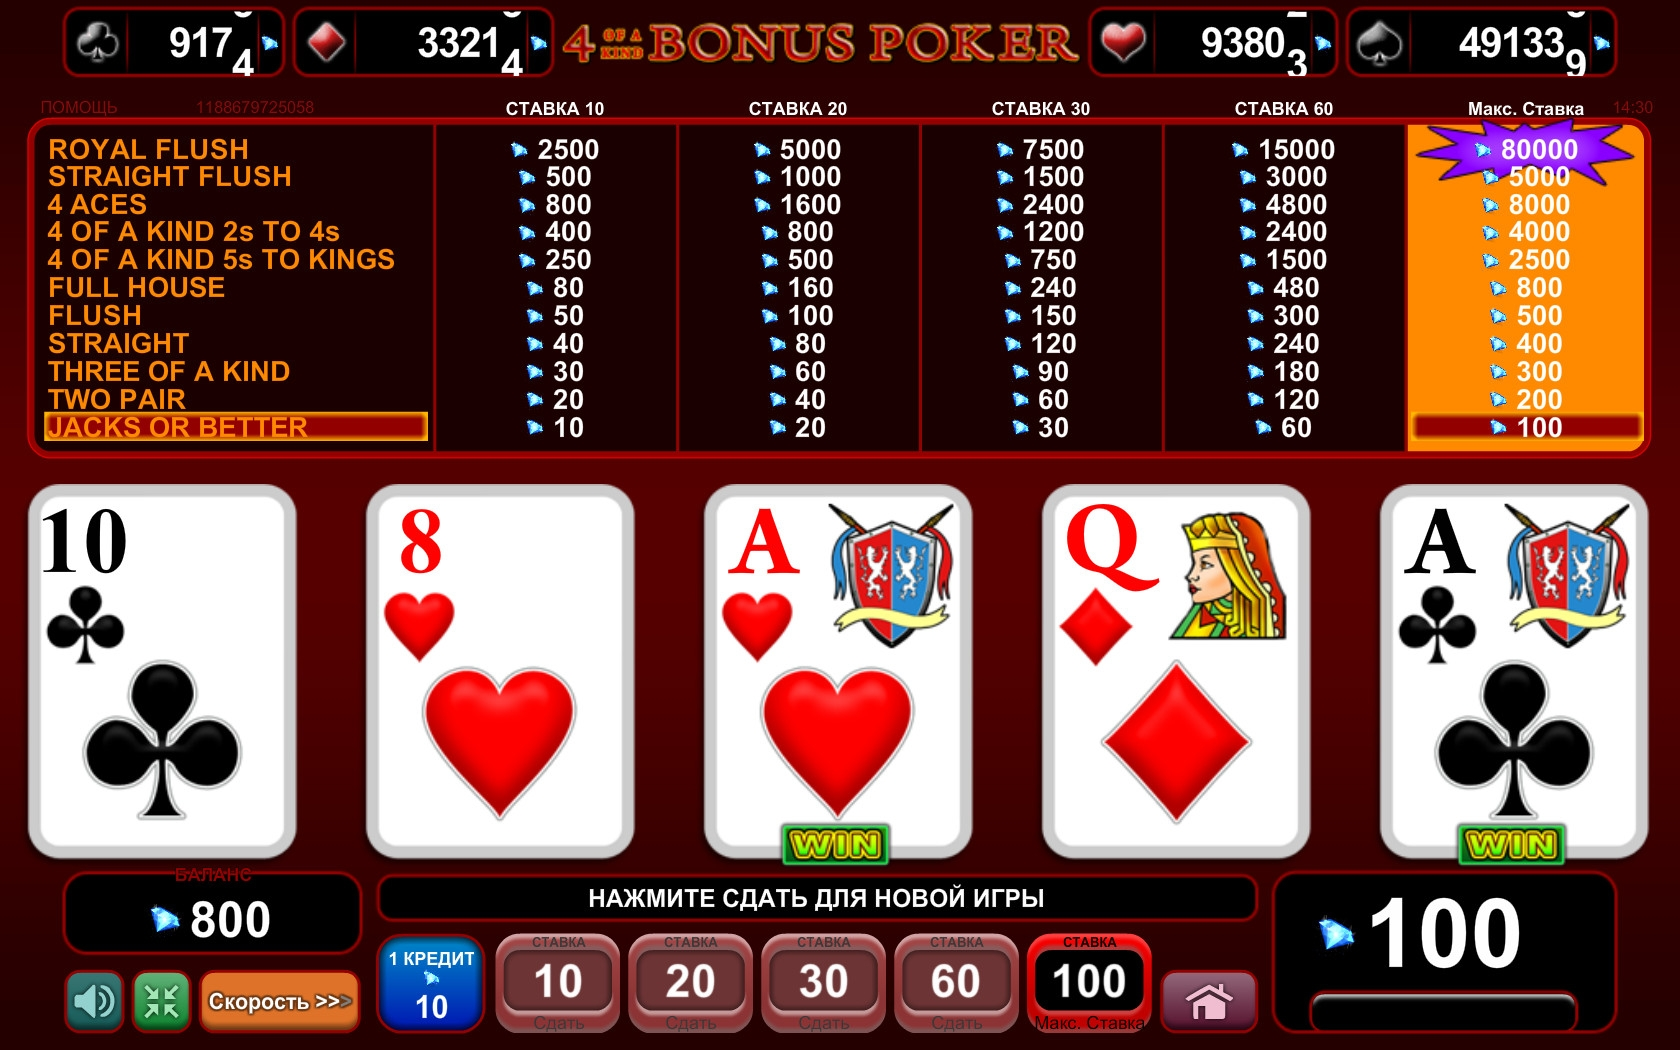 4 of a kind video poker